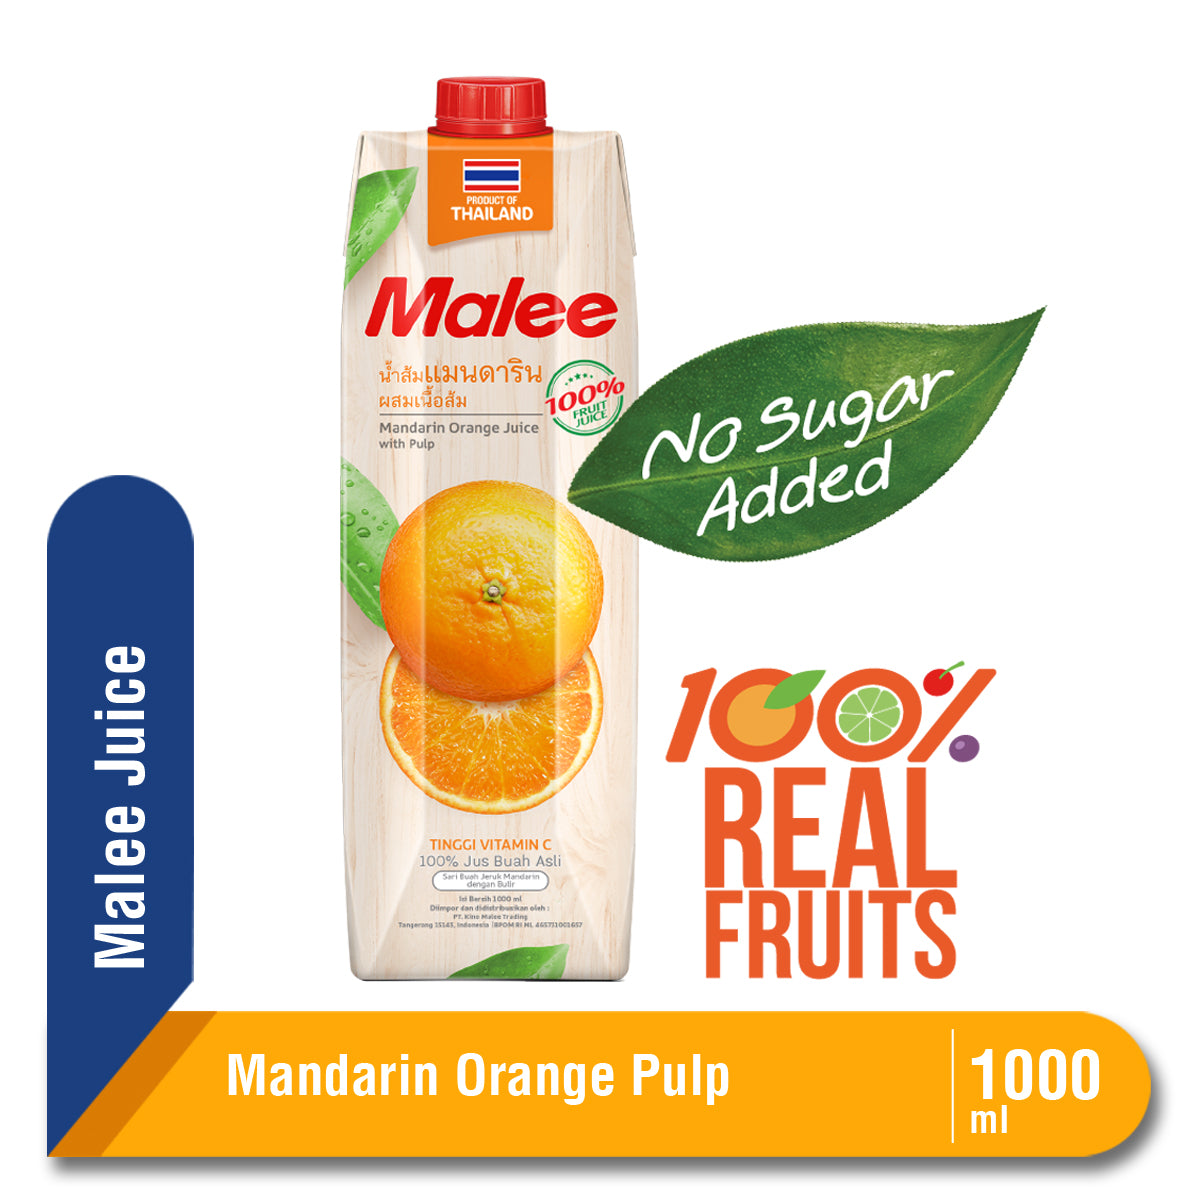 Malee Juice Mandarin Orange Pulp 1000 ml